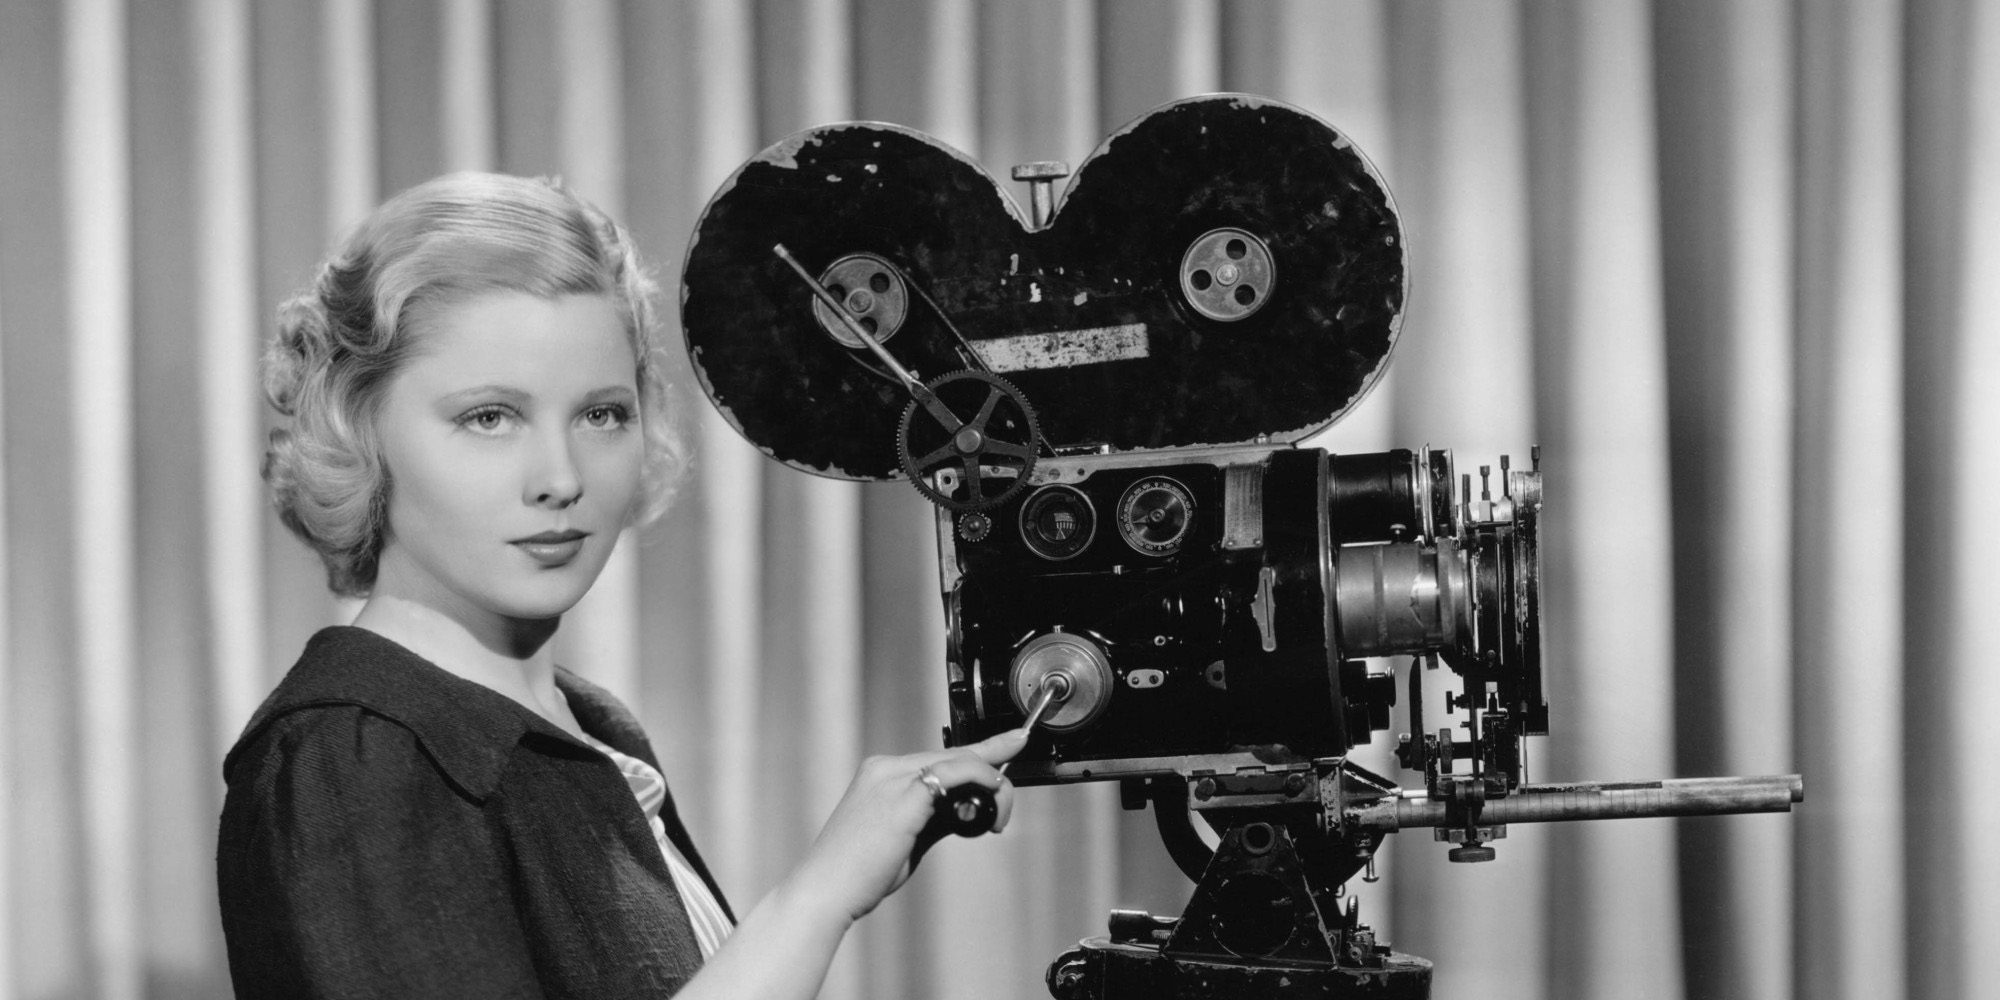 If you're a woman who has often considered venturing into the realm of movie criticism, we urge you to step up and get involved – the industry needs you!